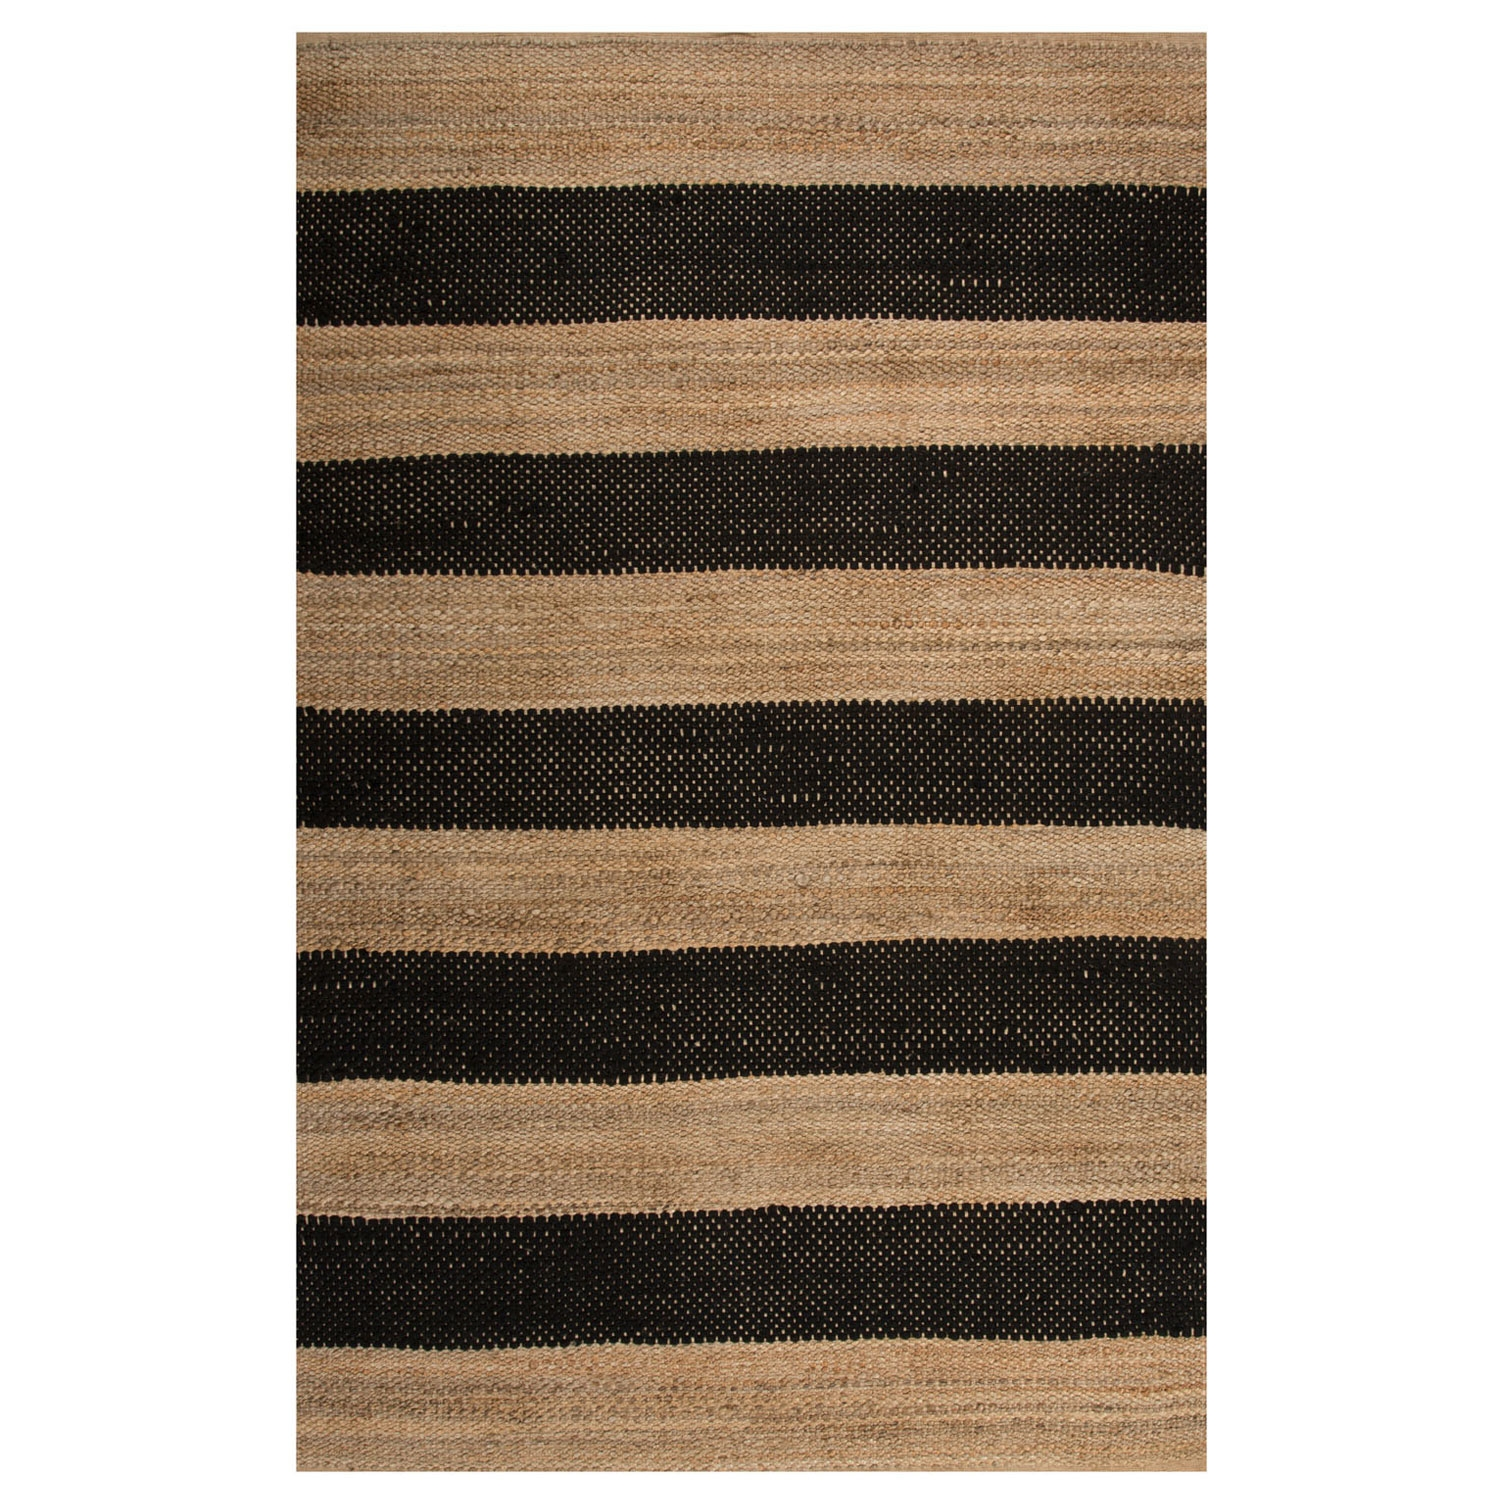 Striped Rugs Browse Our Range Of Striped Area Rugs Varied Colors Intended For Striped Mats (View 3 of 15)